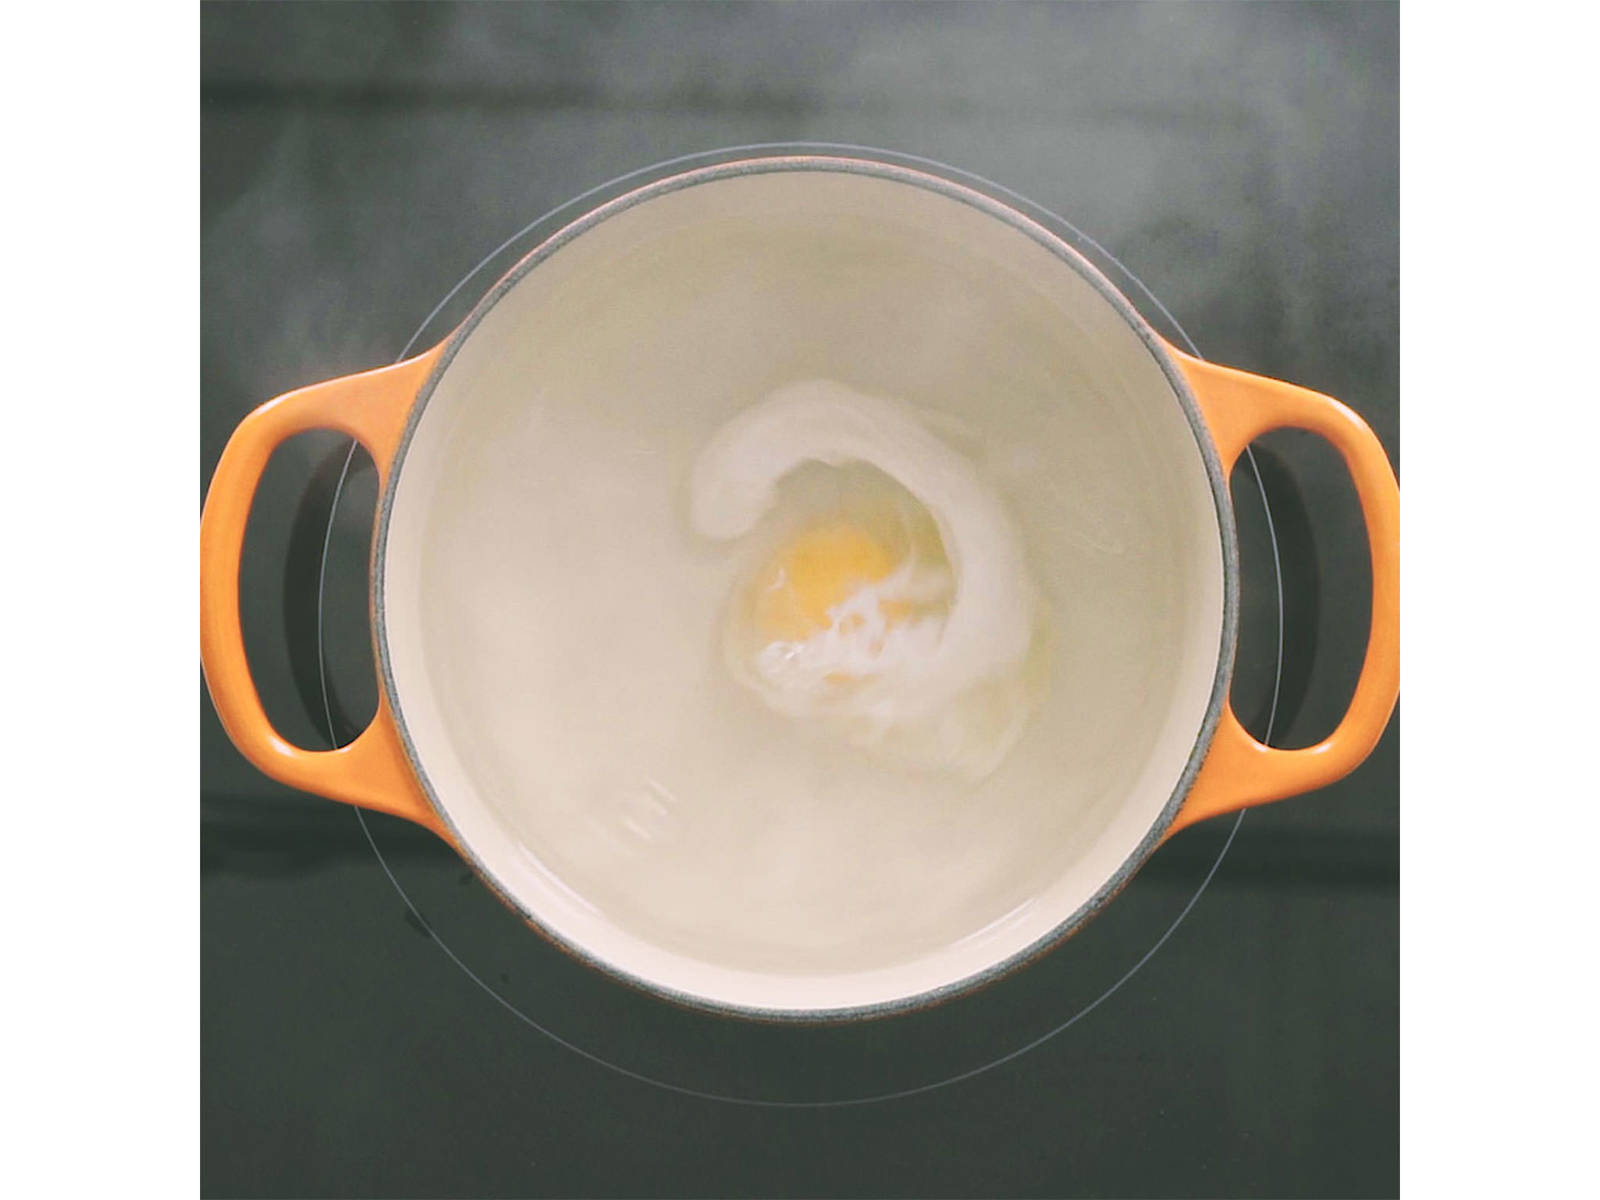 Bring a medium pot of water to a simmer. Add salt and white vinegar. Use wooden spoon to create a whirlpool, then slowly add egg. Let cook until egg white is set, approx. 3 min.